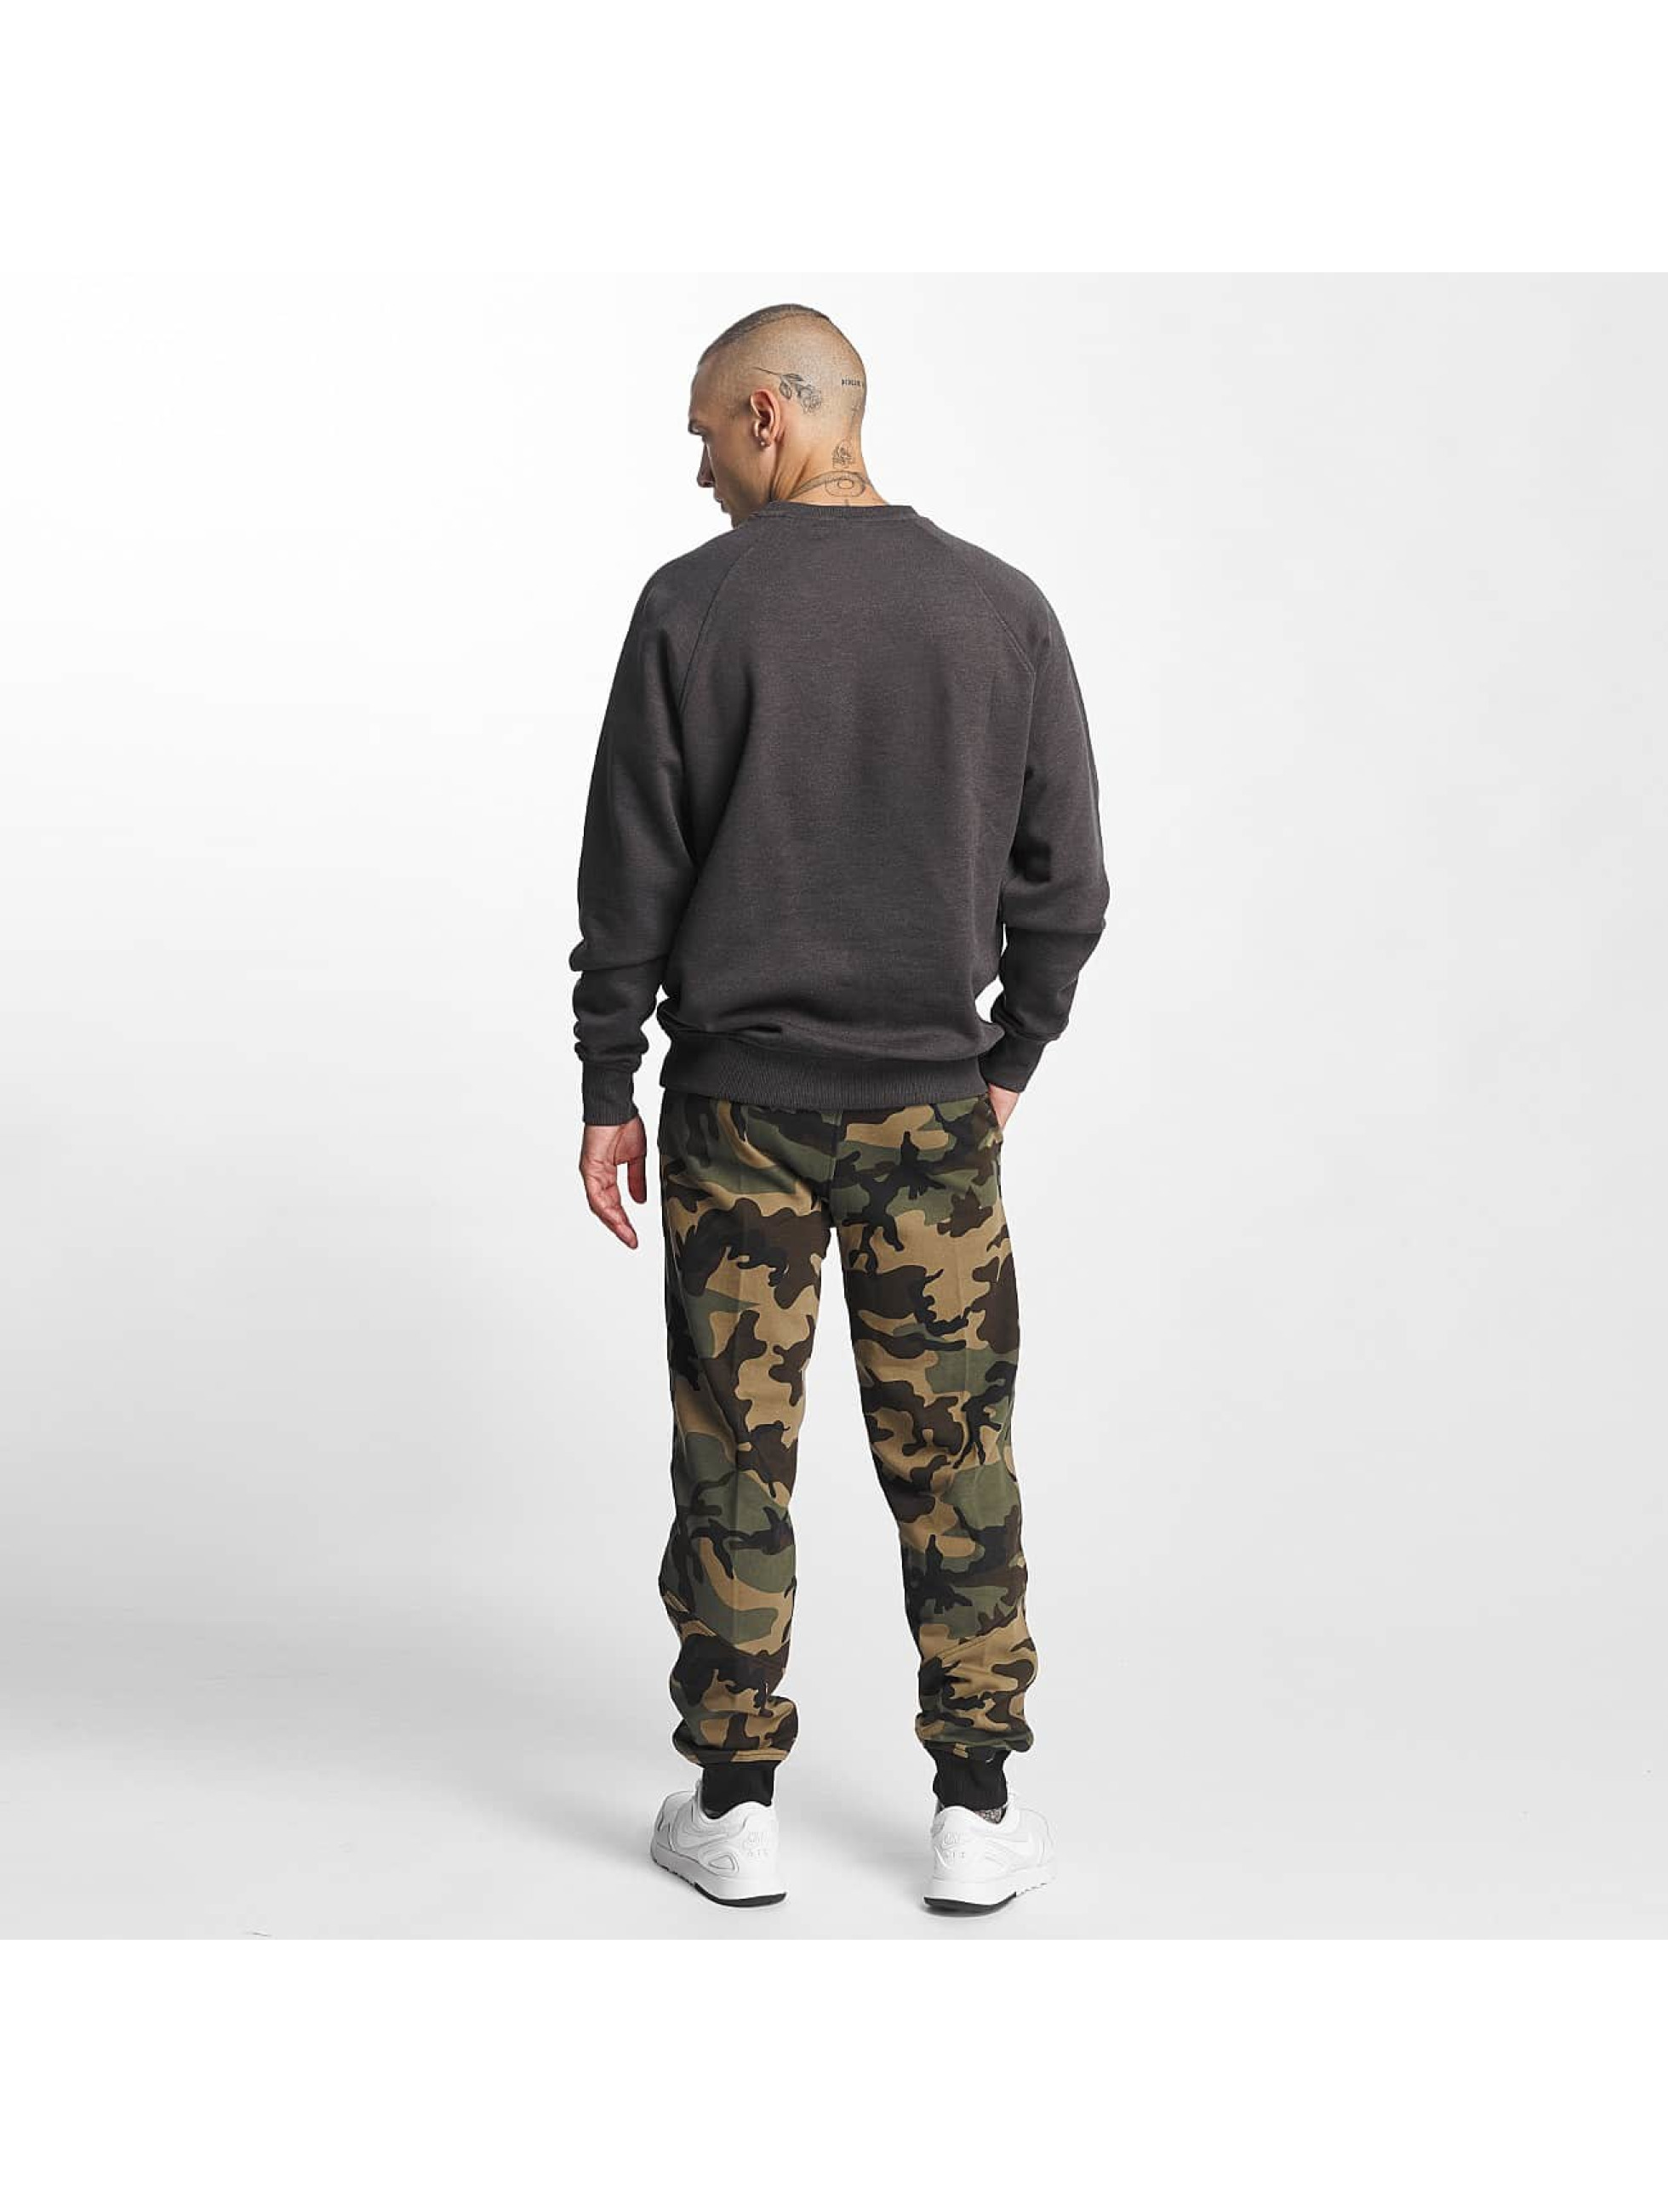 New Era joggingbroek Woodland Atlanta Falcons camouflage